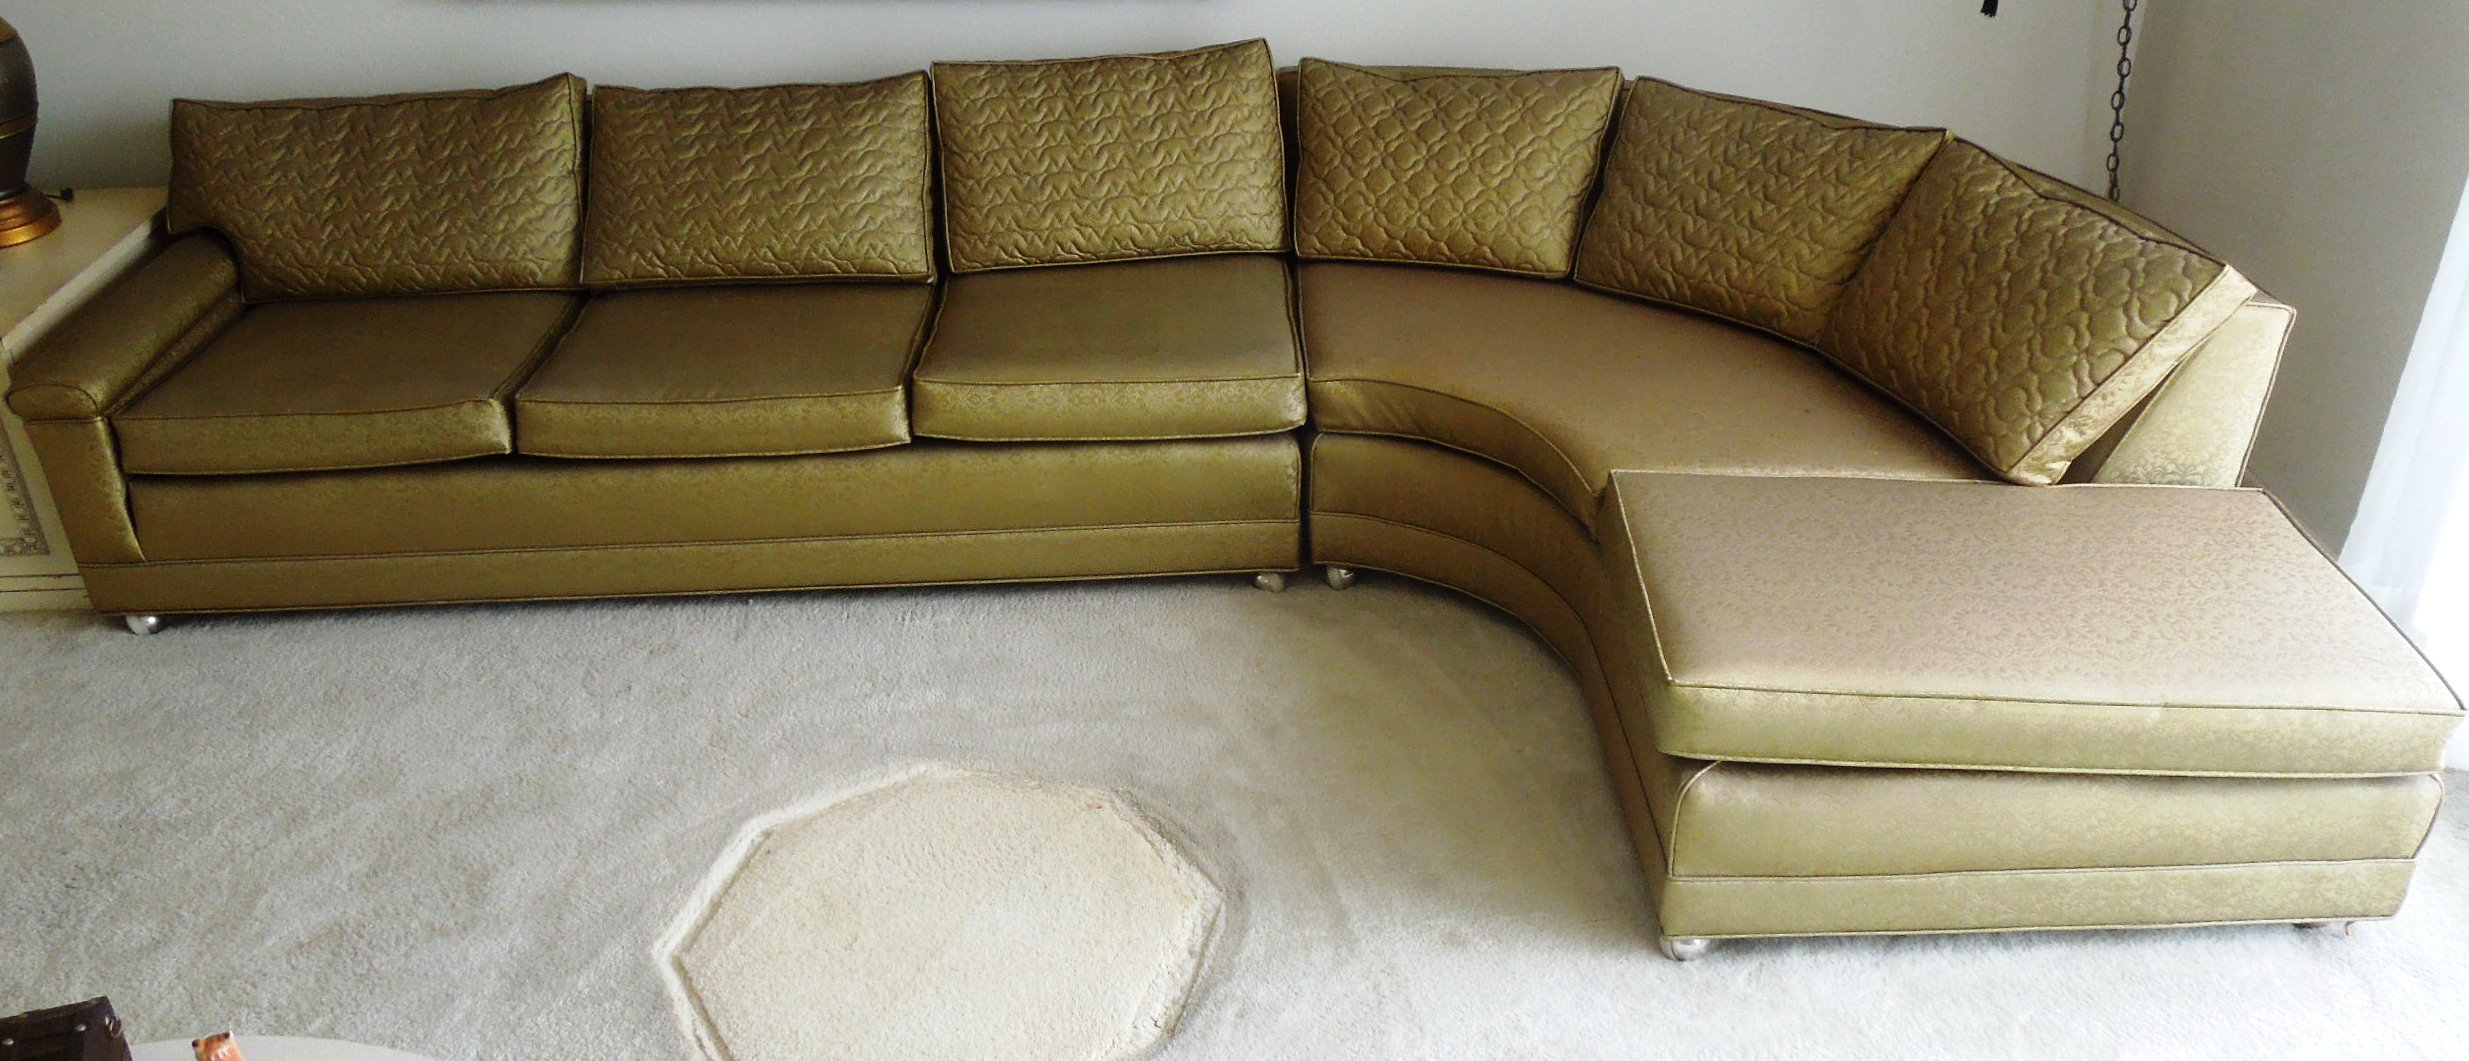 vintage 1960s sofa couch vinyl gold color for sale classifieds. Black Bedroom Furniture Sets. Home Design Ideas